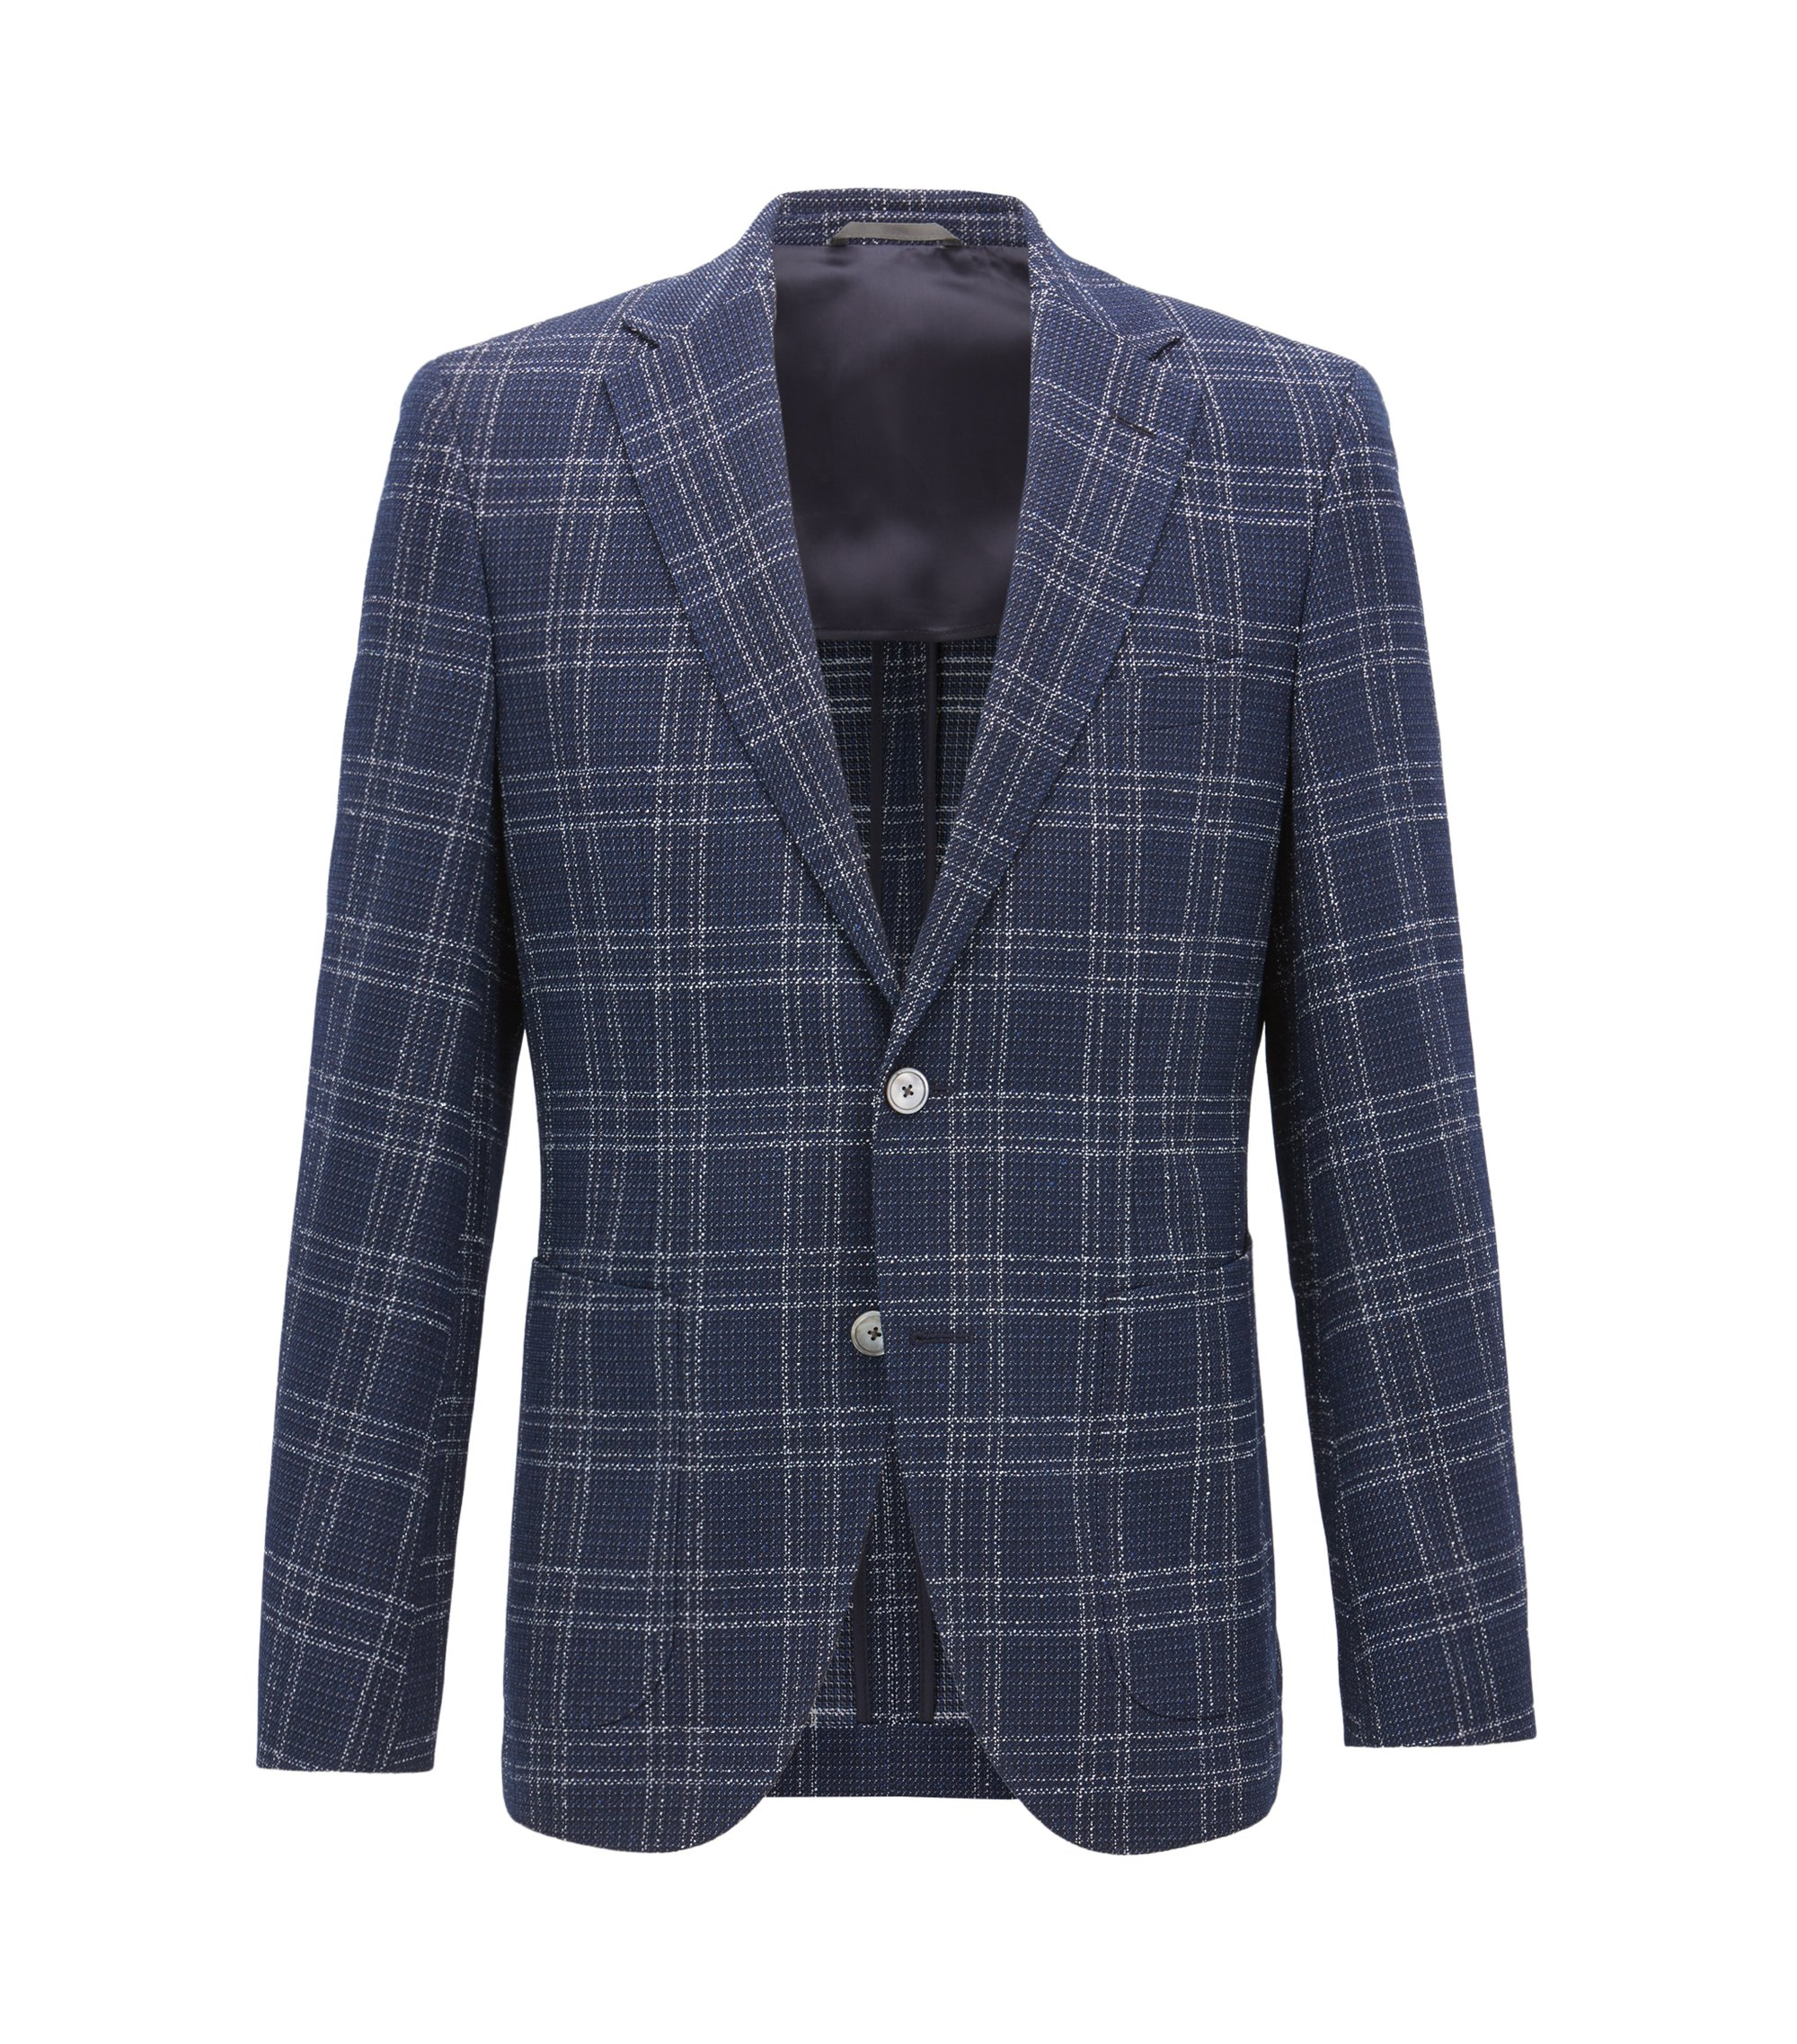 Blazer regular fit in misto lana vergine elasticizzata a quadri, Blu scuro